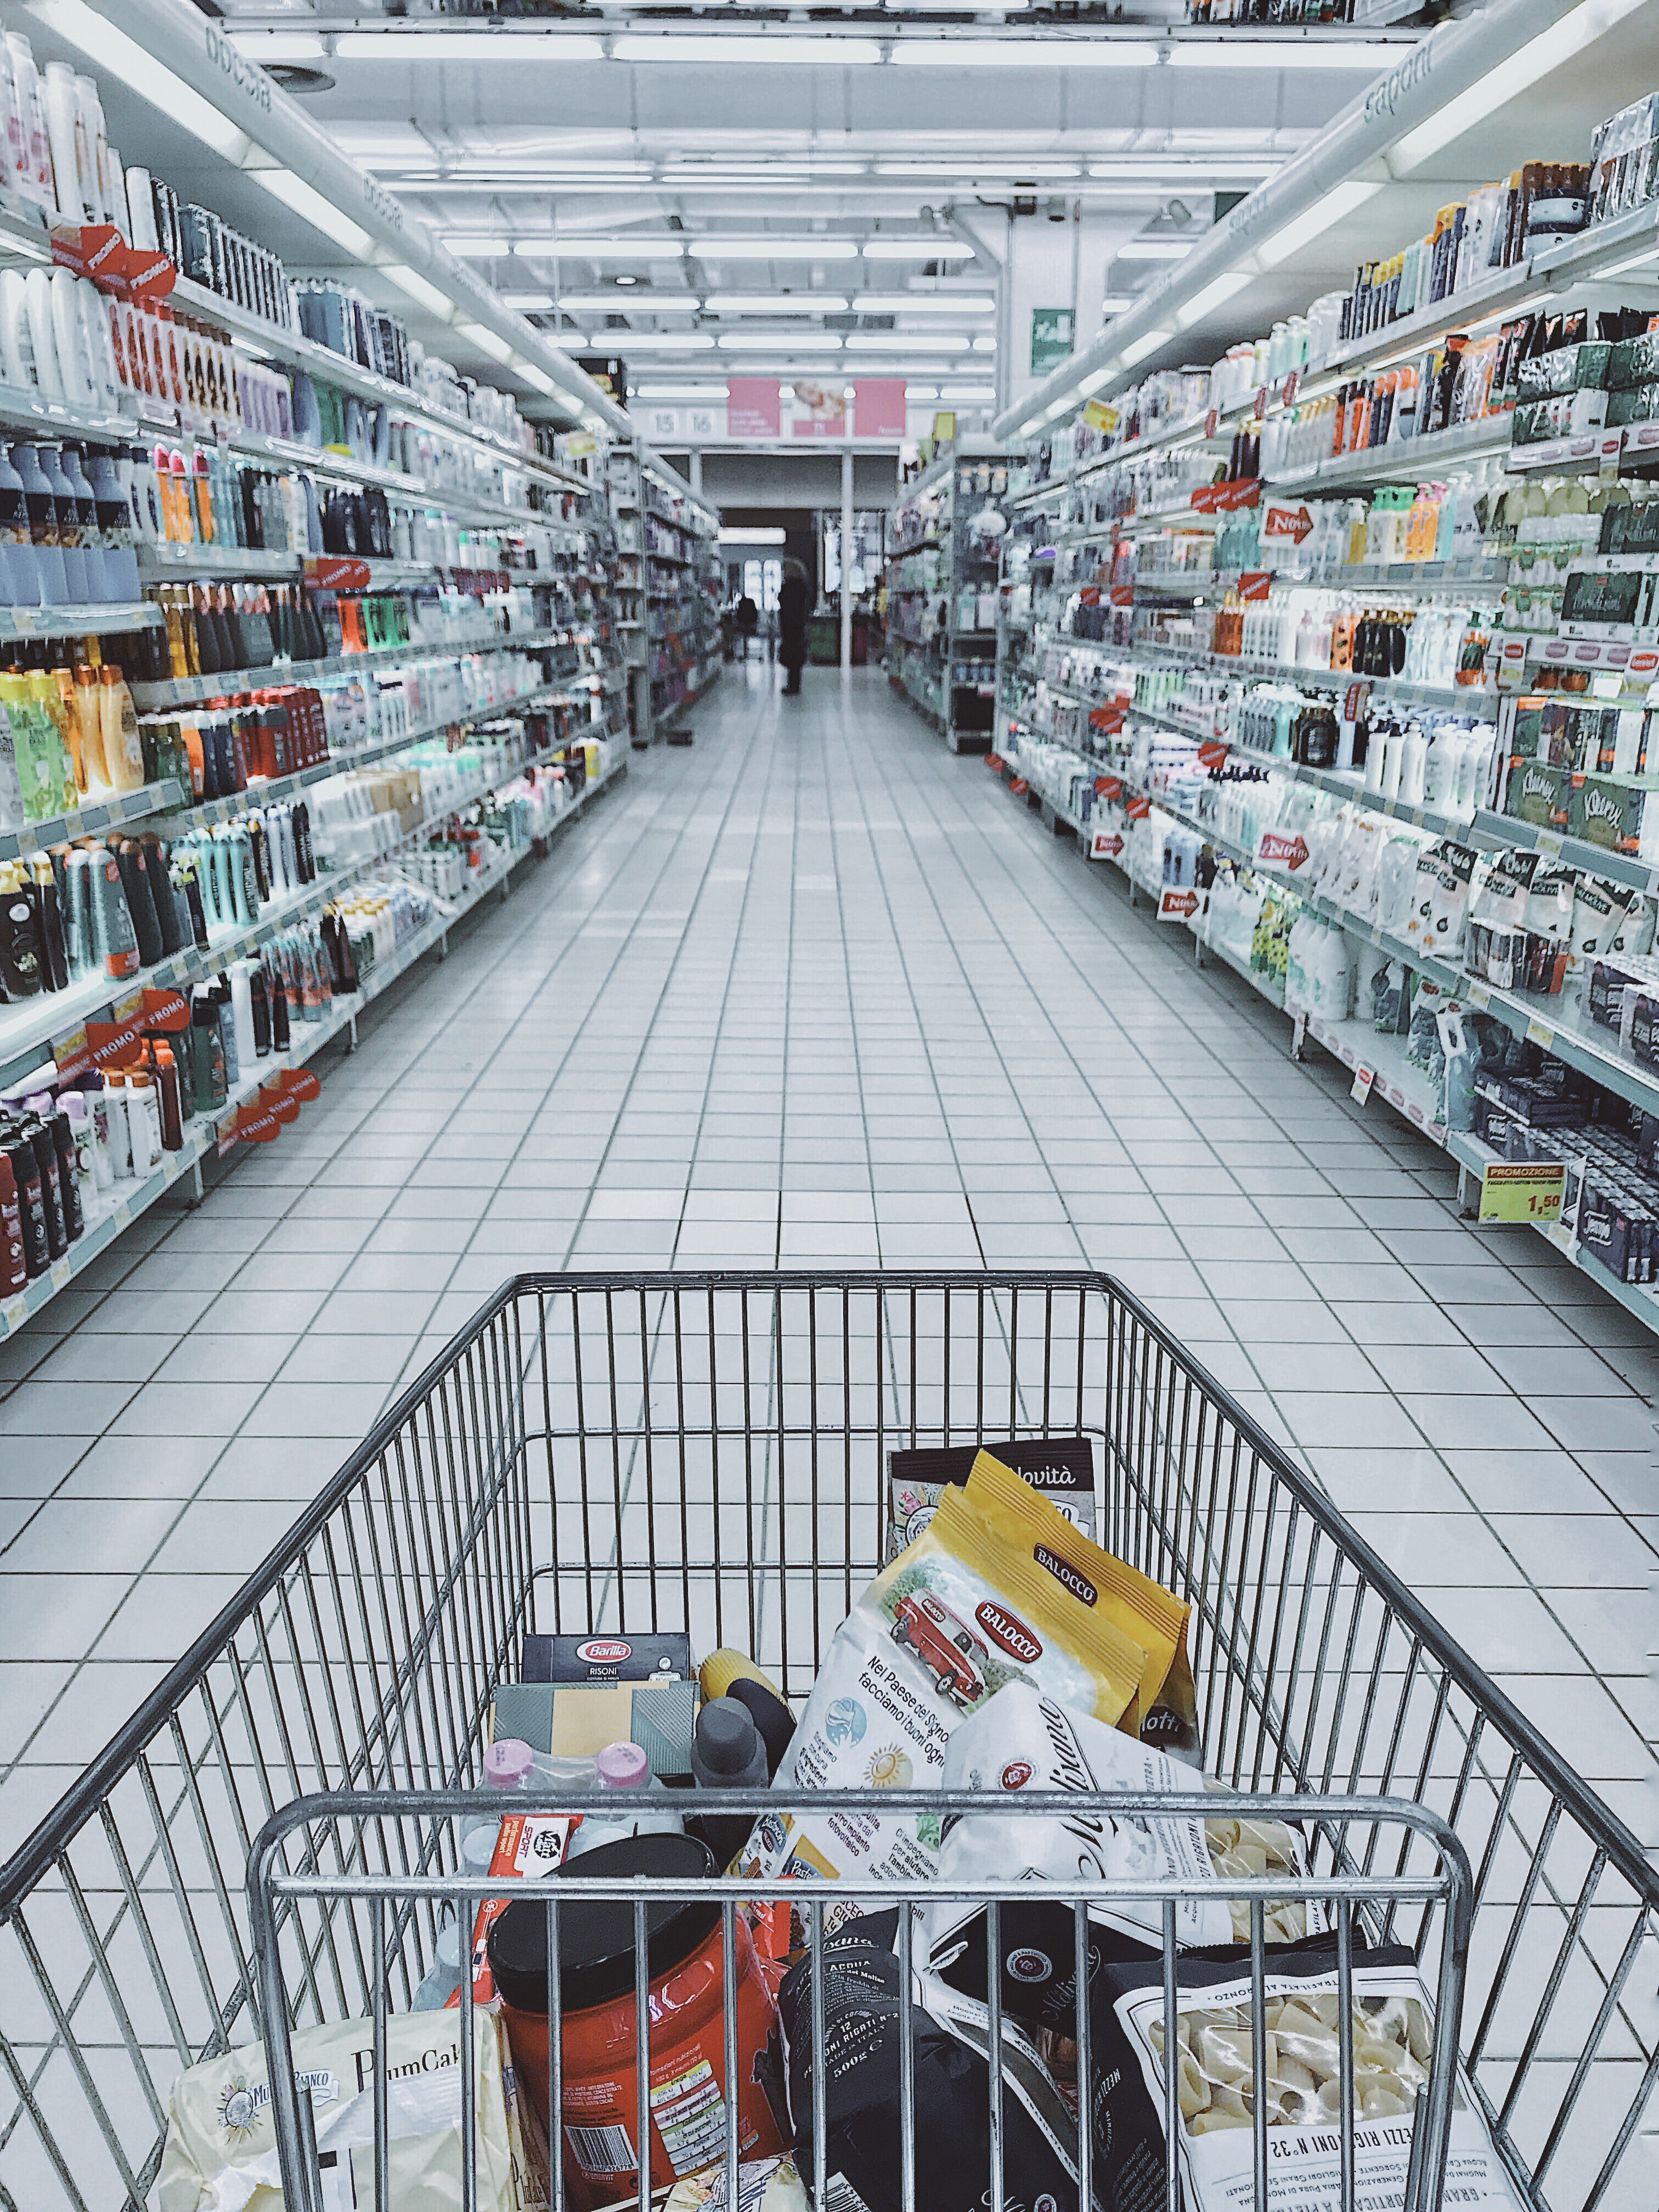 My ex was (supposedly) doing groceries when the entire thing kicked off | Source: Pexels